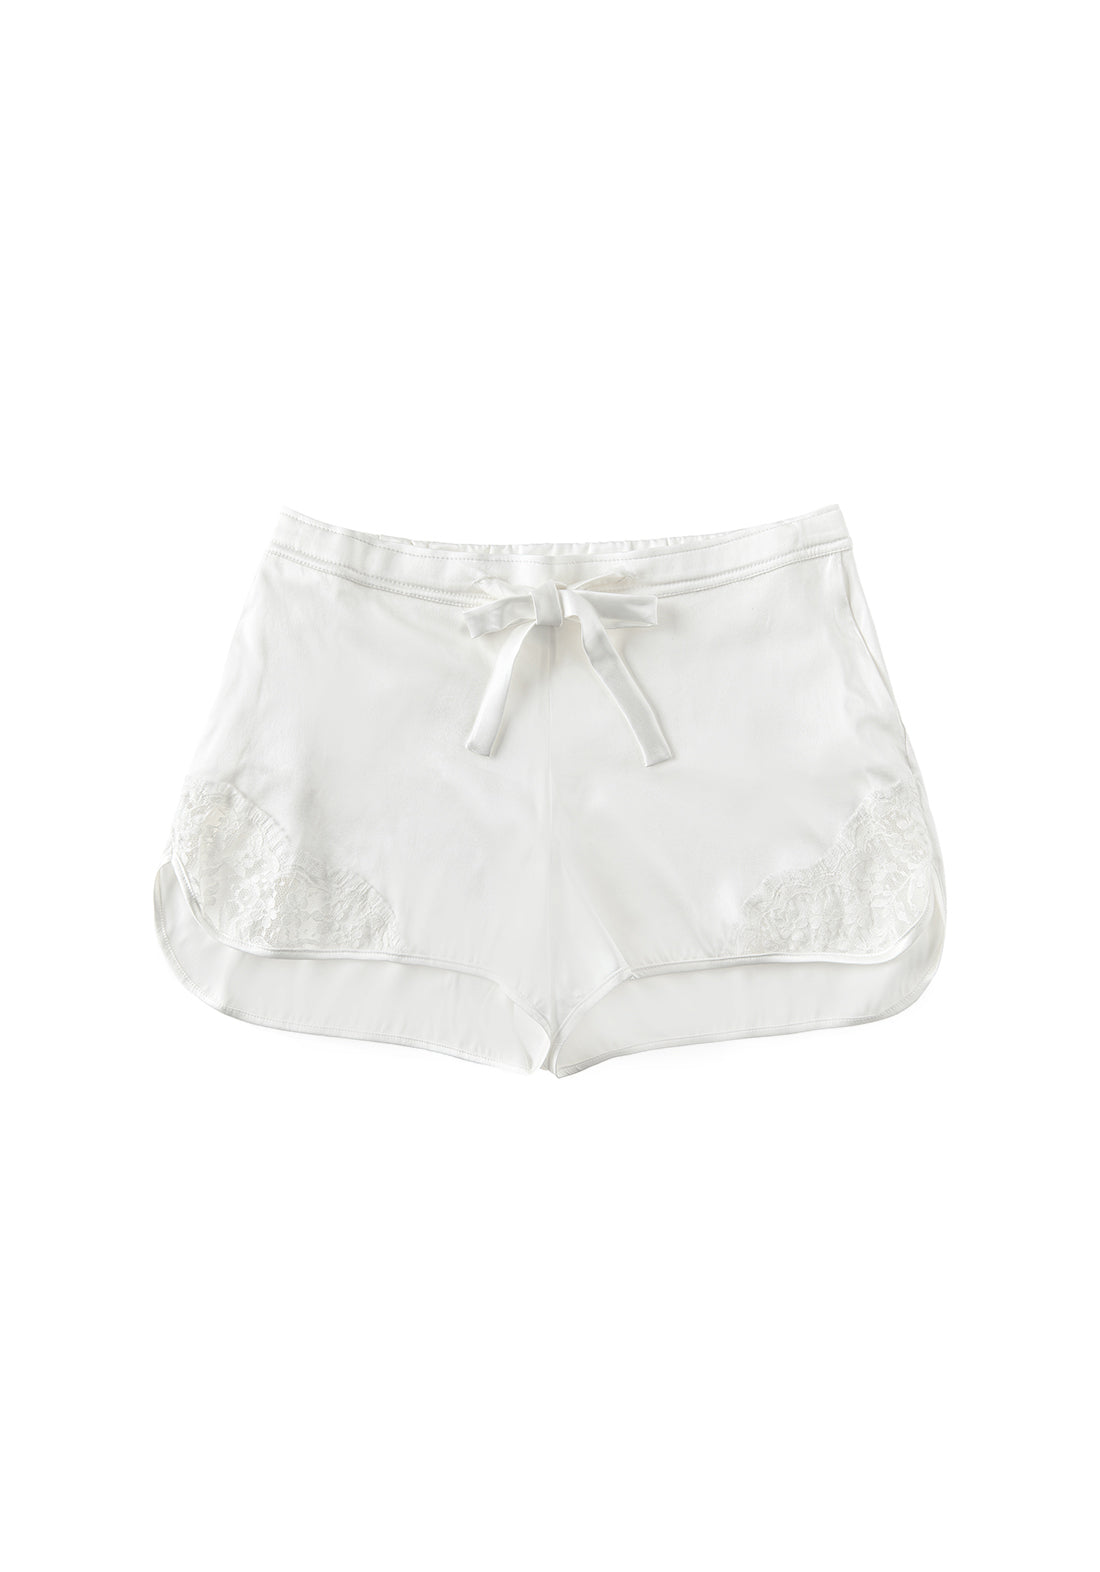 Macaroon Delights Silk Shorts in Ivory